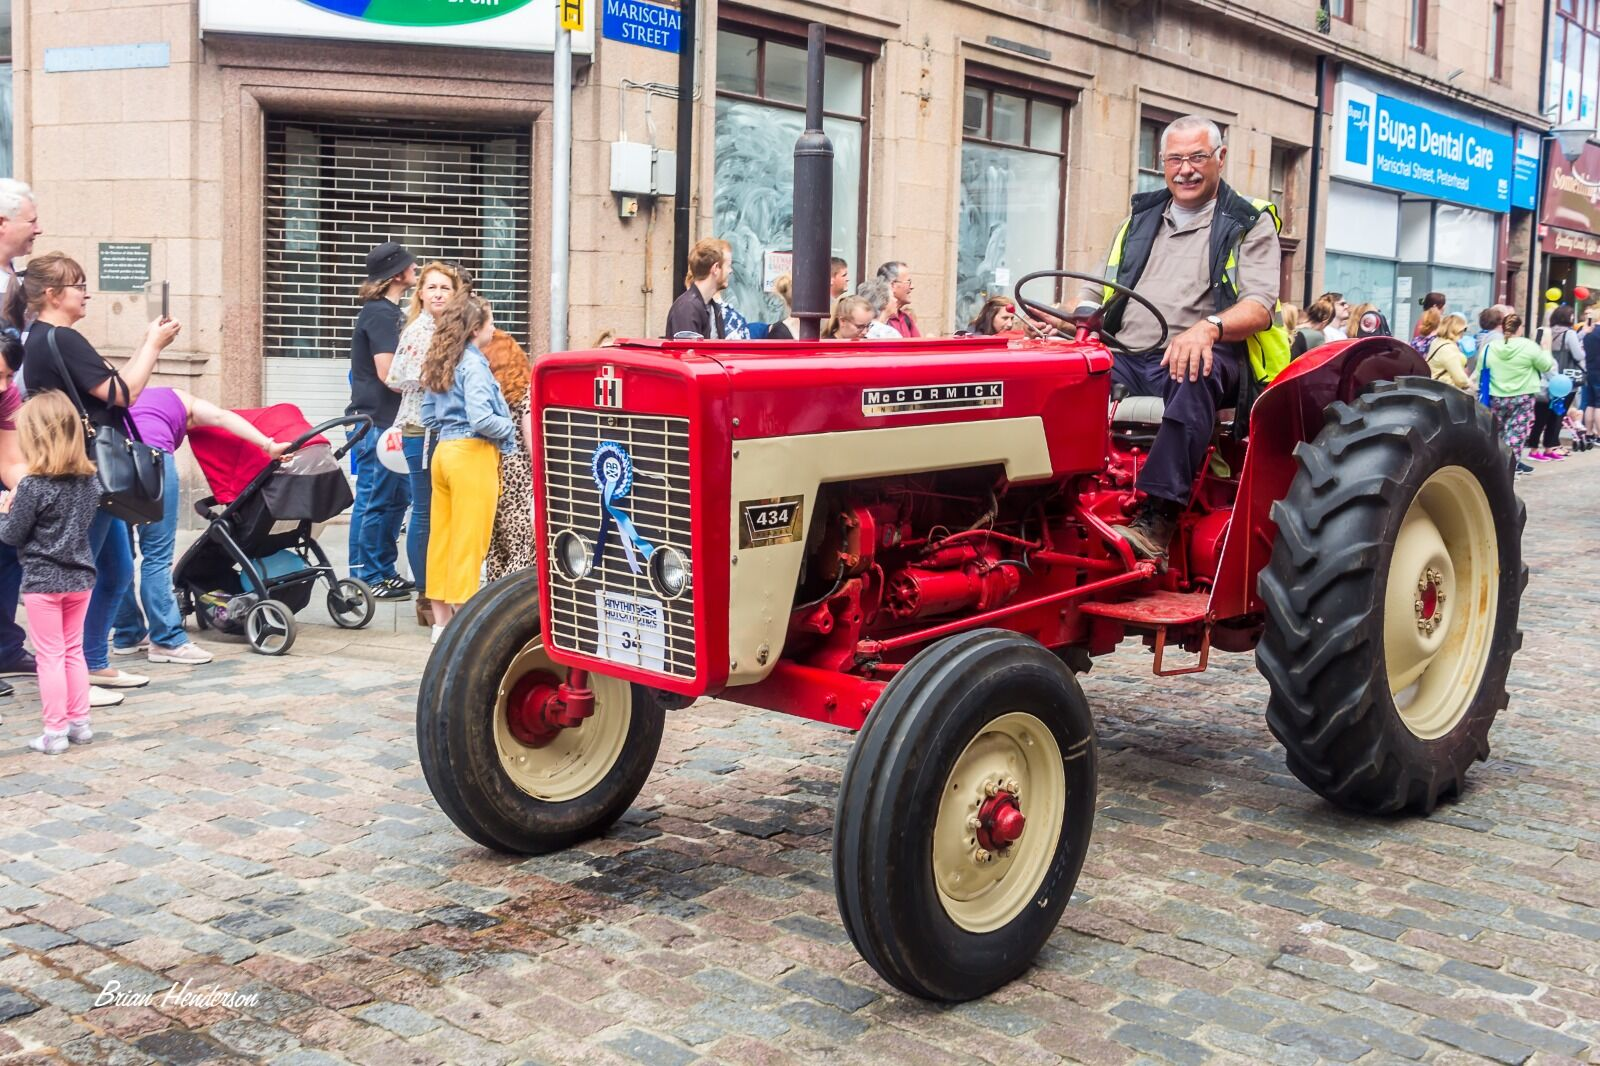 1969 McCormack 434 vintage tractor